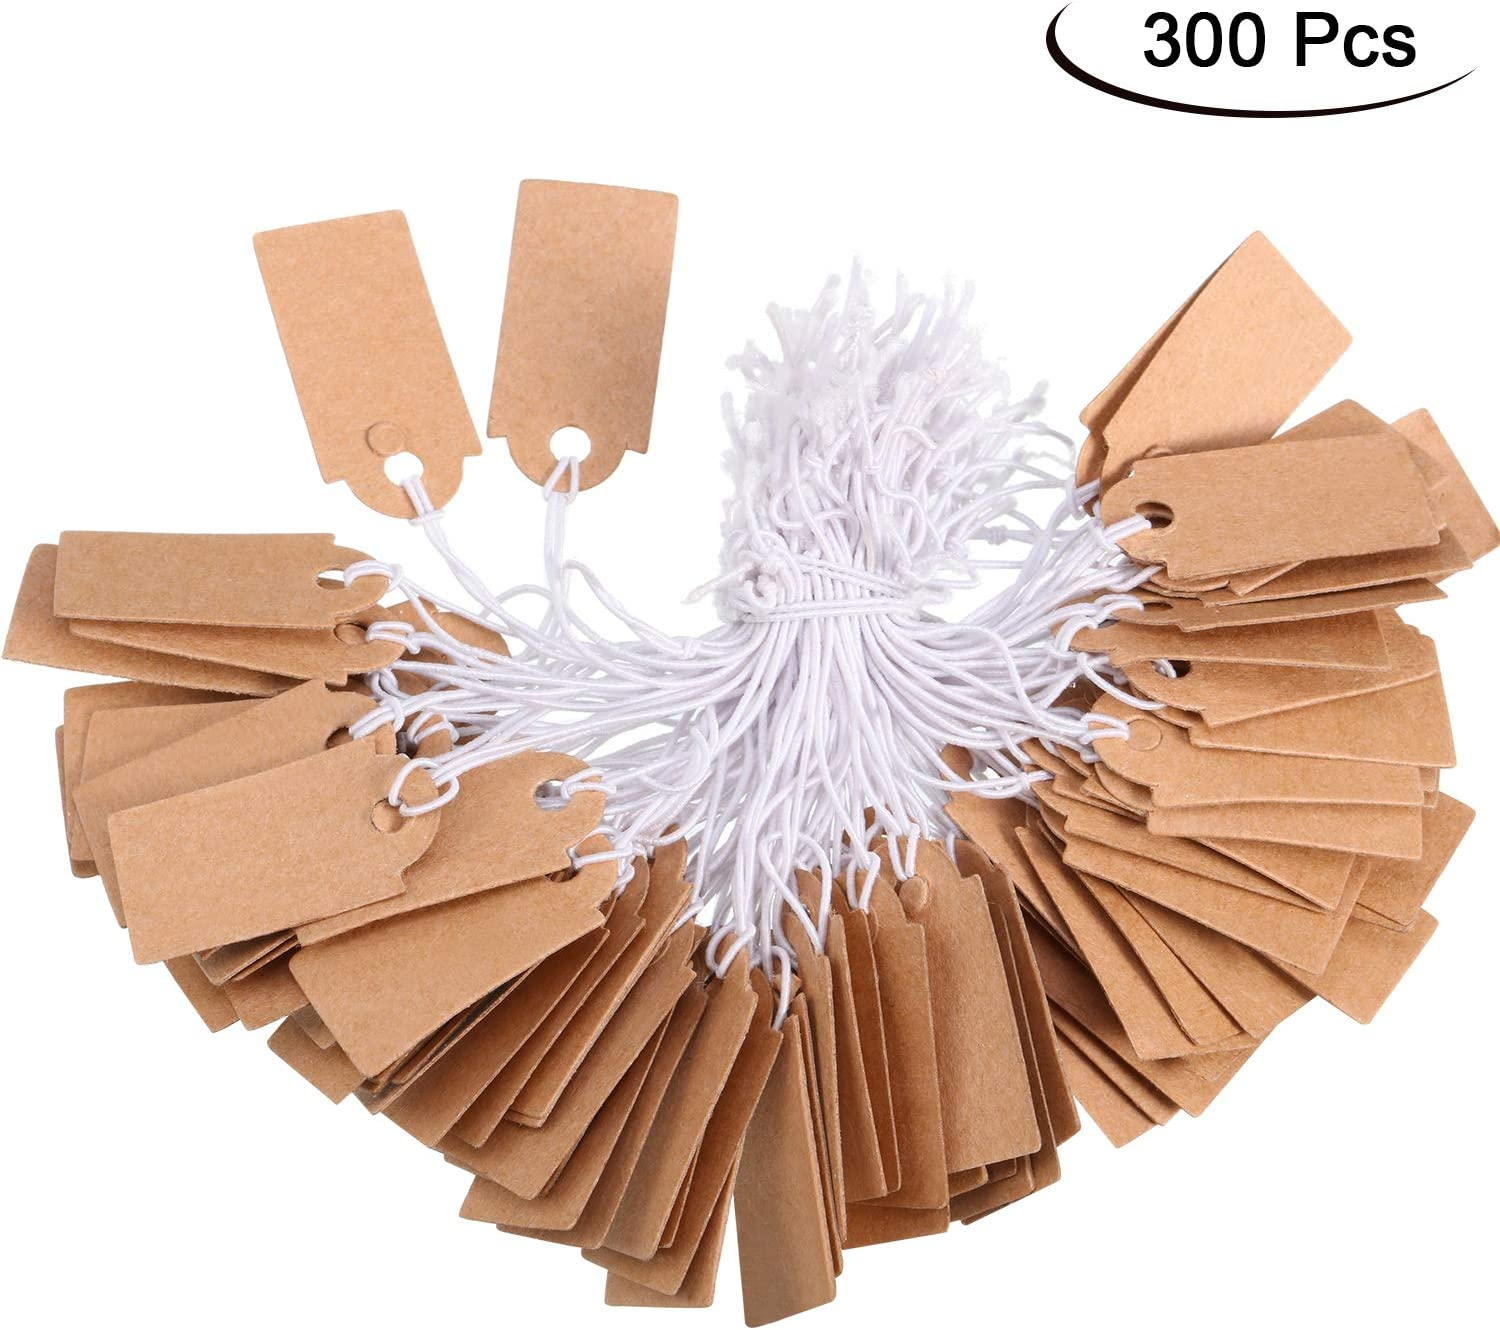 Shappy 300 Packs Price Tags Marking Labels Display Hang Tags with Elastic Str...